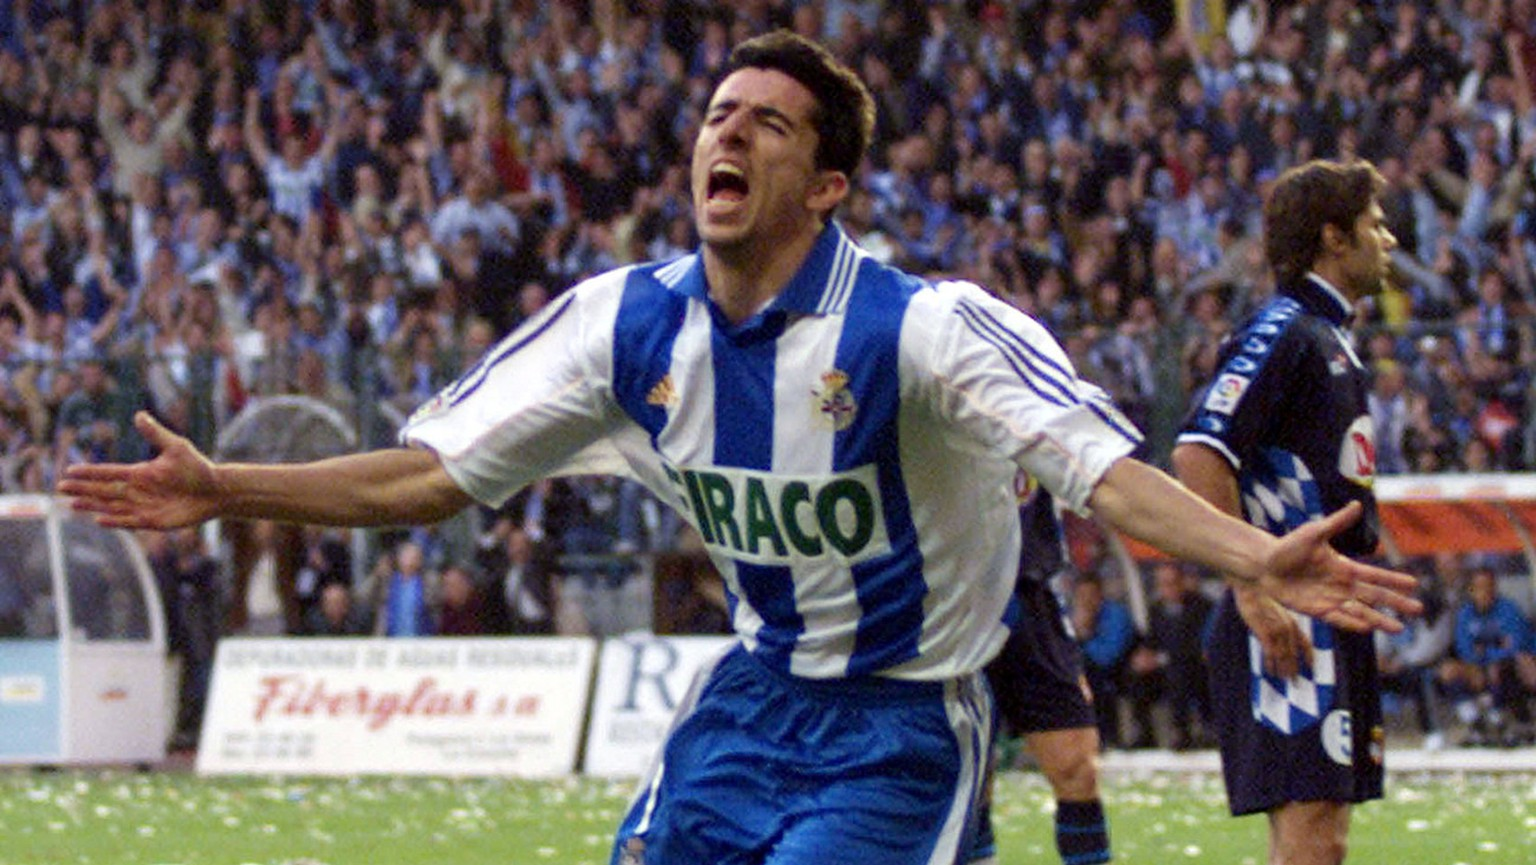 Deportivo La Coruna's Dutch player Makaay celebrates his team's second goal against RCD Espanol on the last day of the Spanish league championship in La Coruna, northern Spain Friday, May 19, 2000. A win for Deportivo La Coruna would give them the league title. (KEYSTONE/AP Photo/Delmi Alvarez)